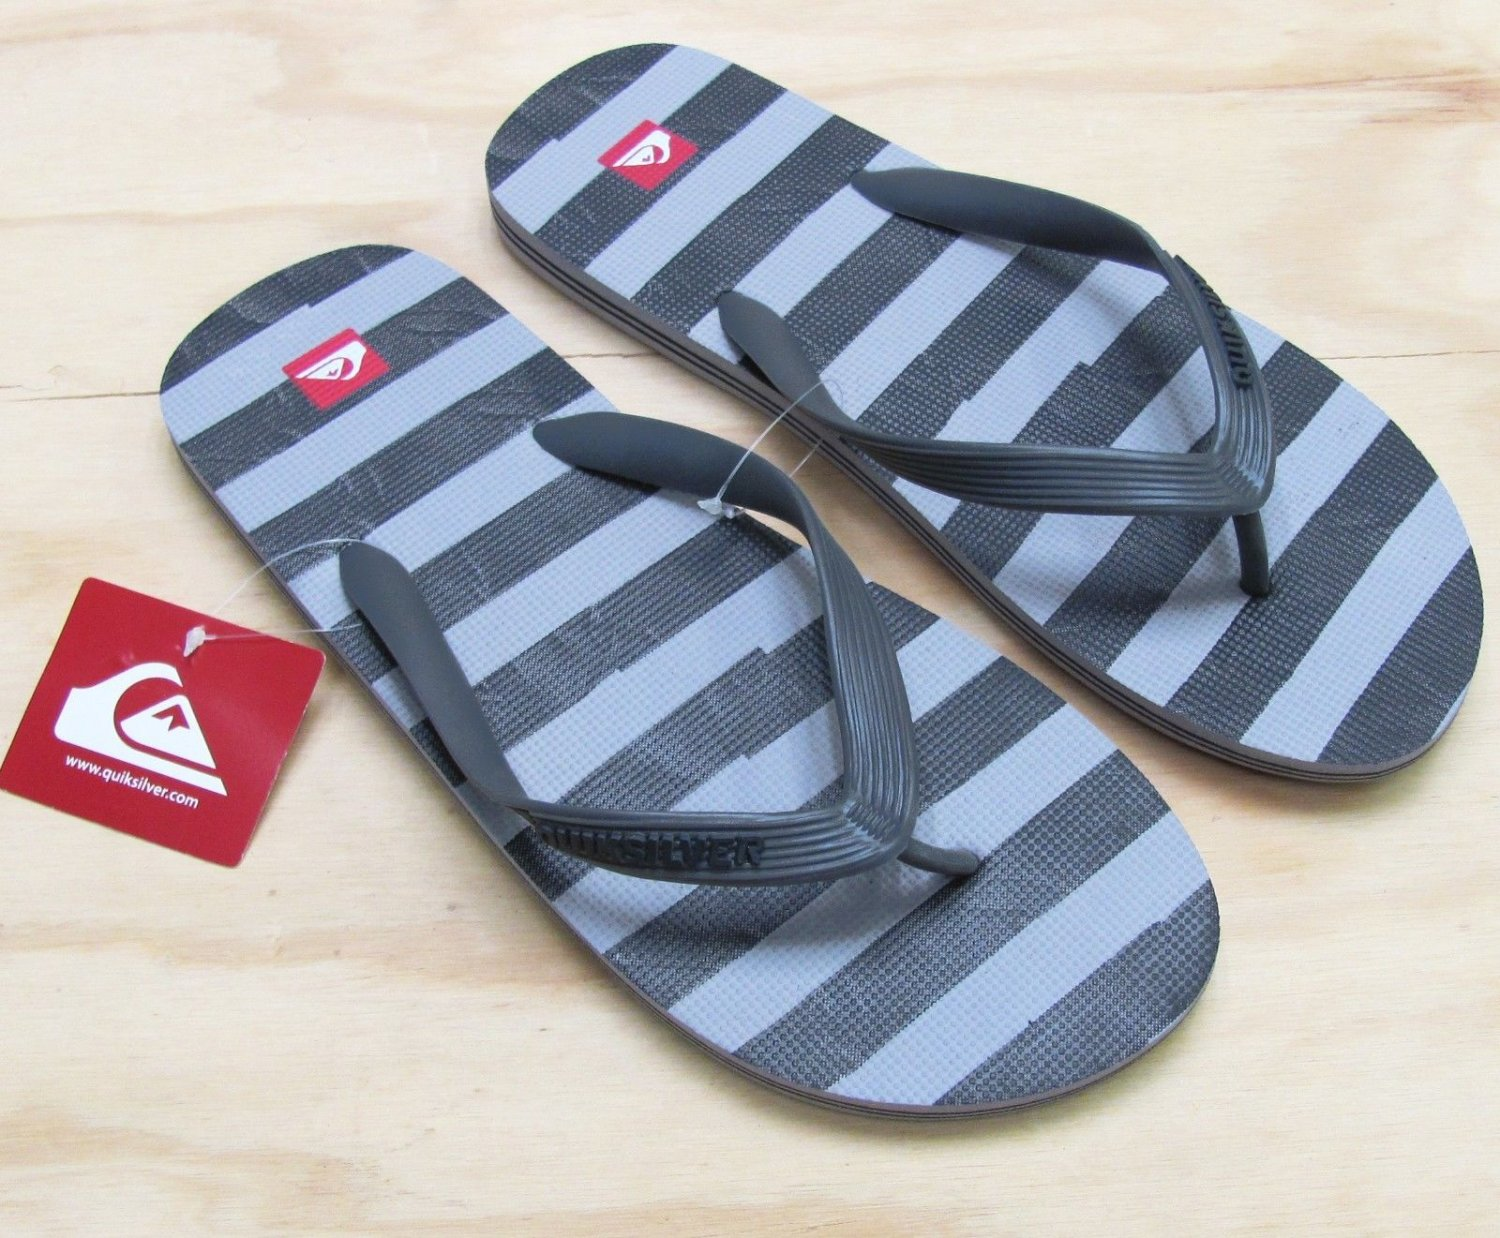 Quiksilver Mens size 7 Molokai Art Series Flip Flops Gray and Black Stripe Sandals